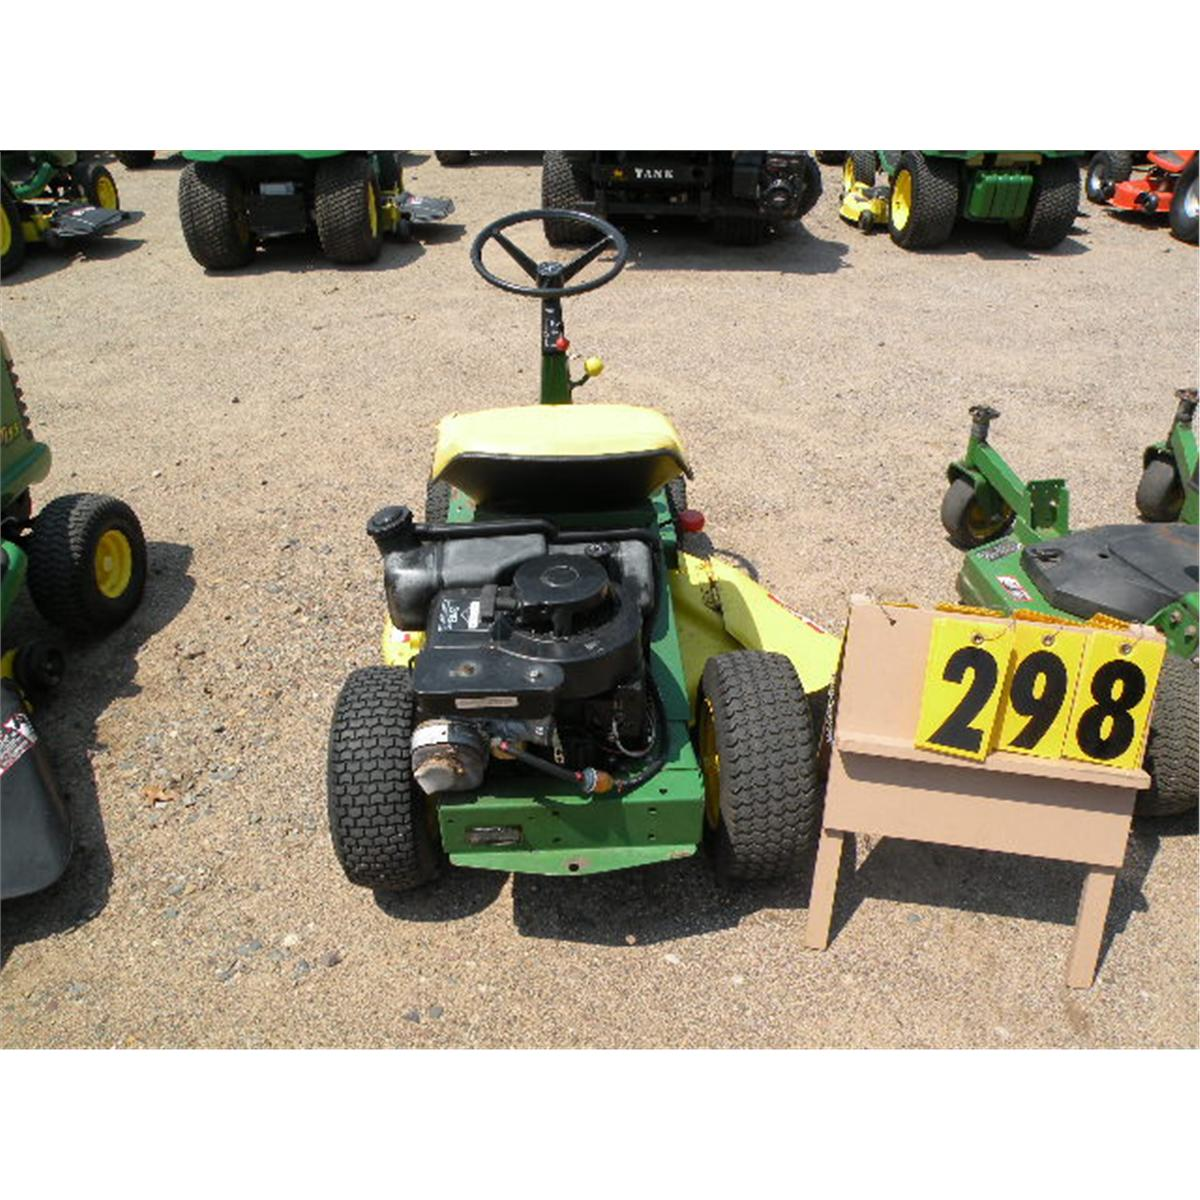 John Deere R70 The Best Deer Of 2018 Model Riding Lawnmowermodelr72i Need Assembly Diagram Vine S82 Rear Mower You